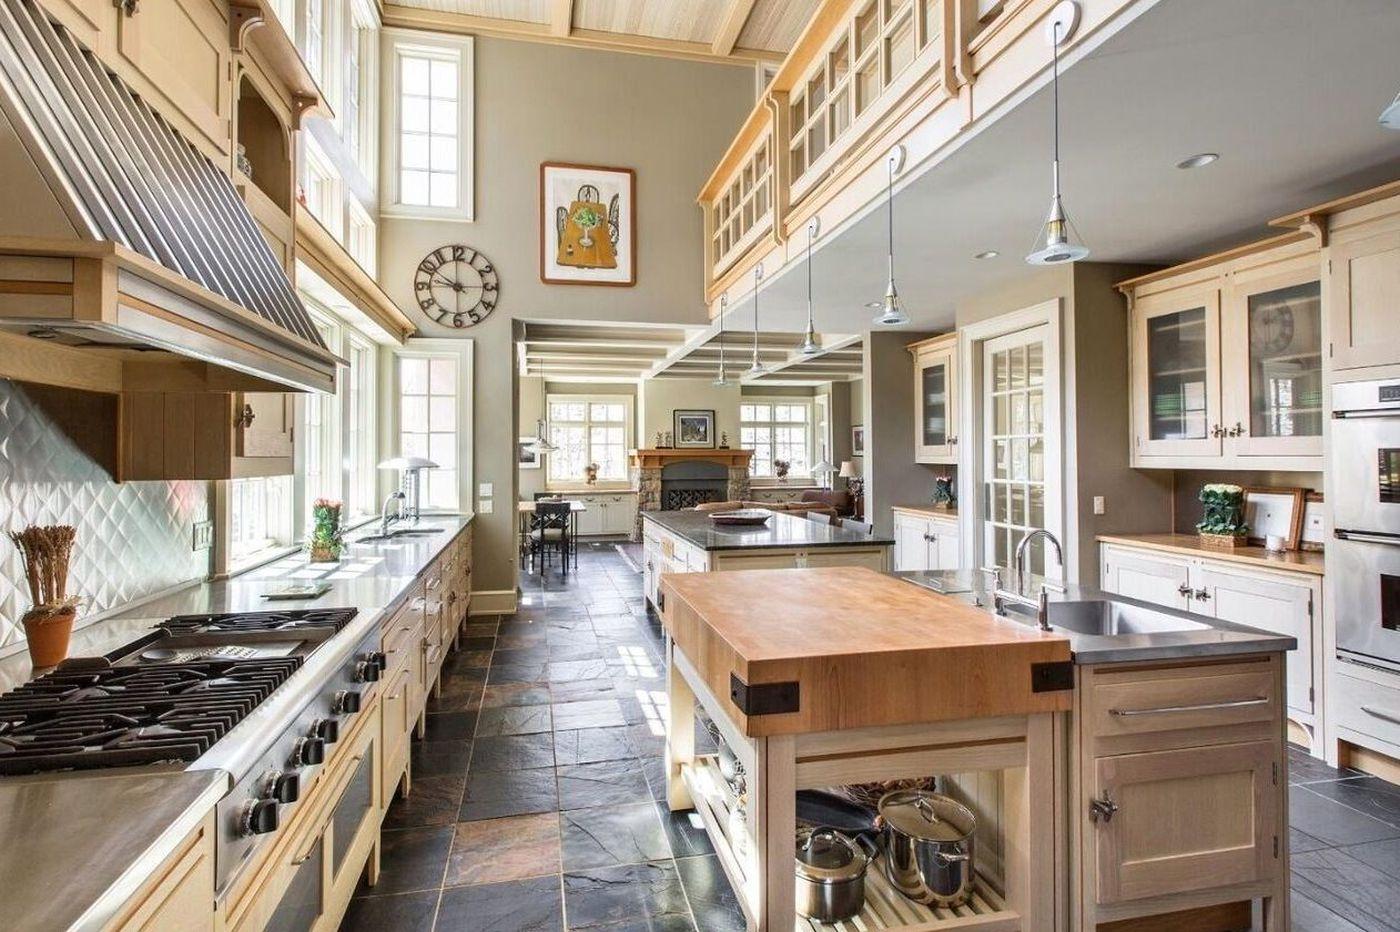 Three kitchens where you wouldn't mind prepping all day for Thanksgiving